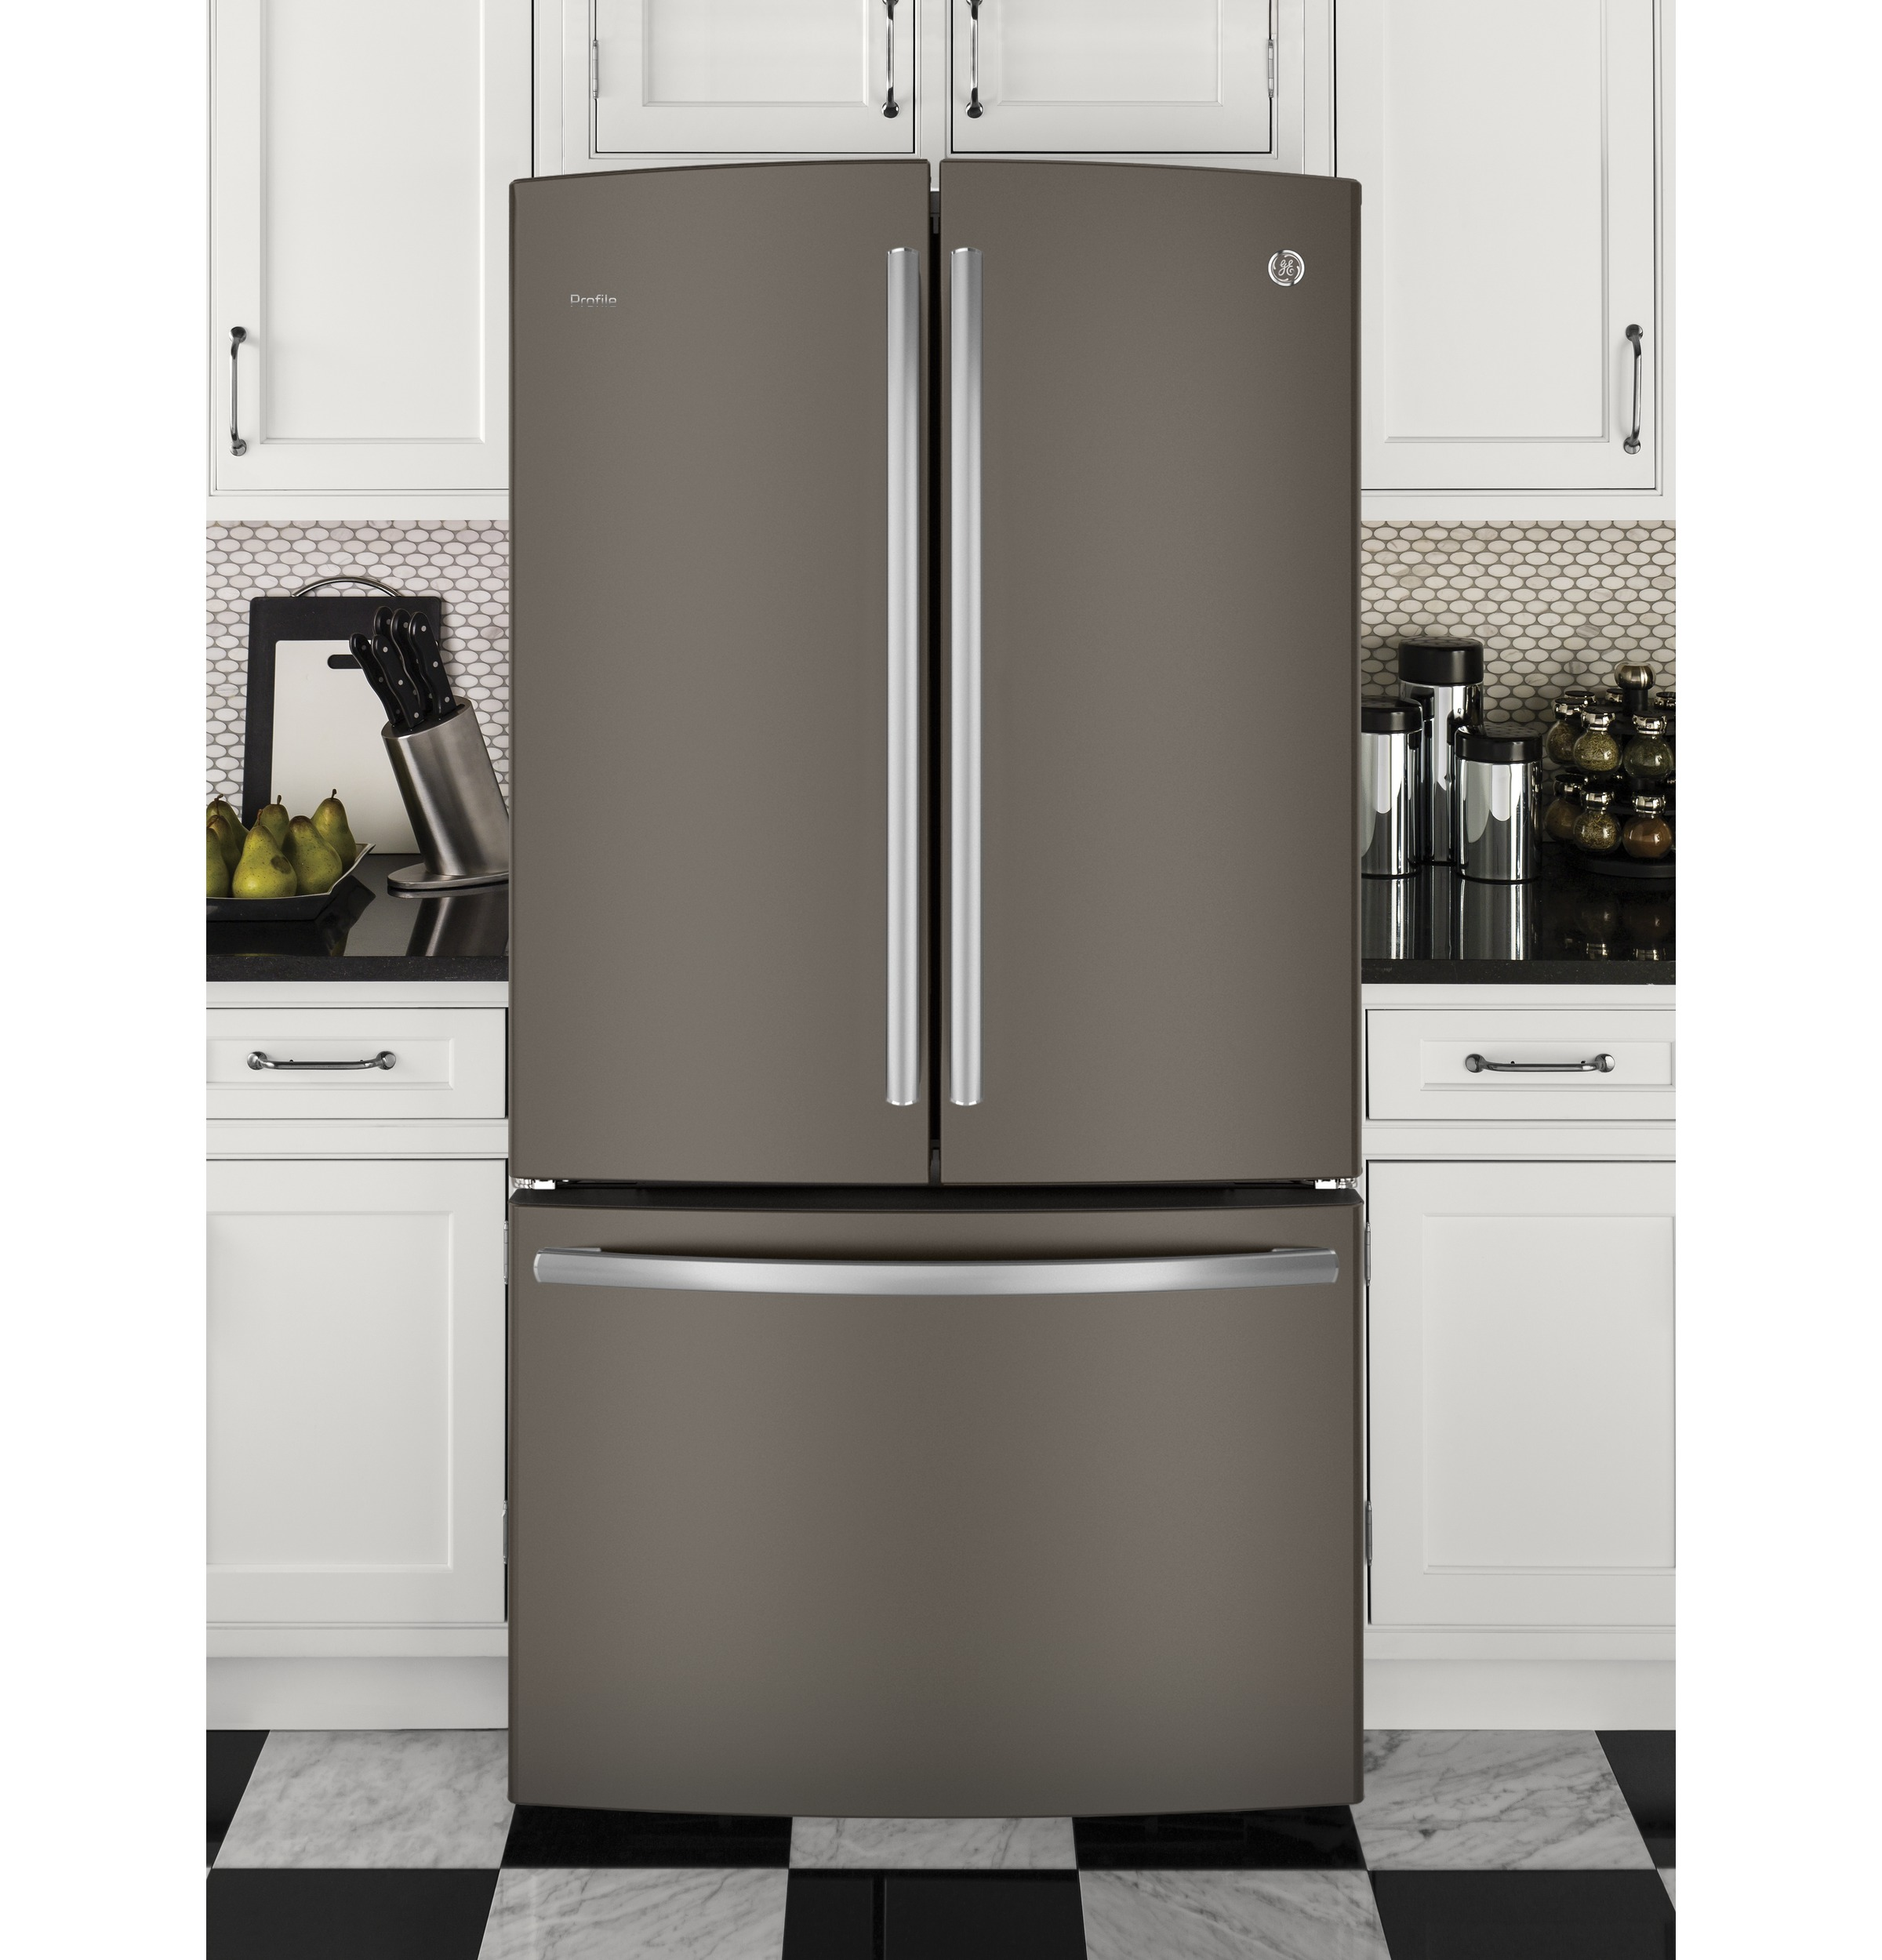 Design Ge Slate Refrigerator ge series energy 23 1 cu ft counter depth french product image